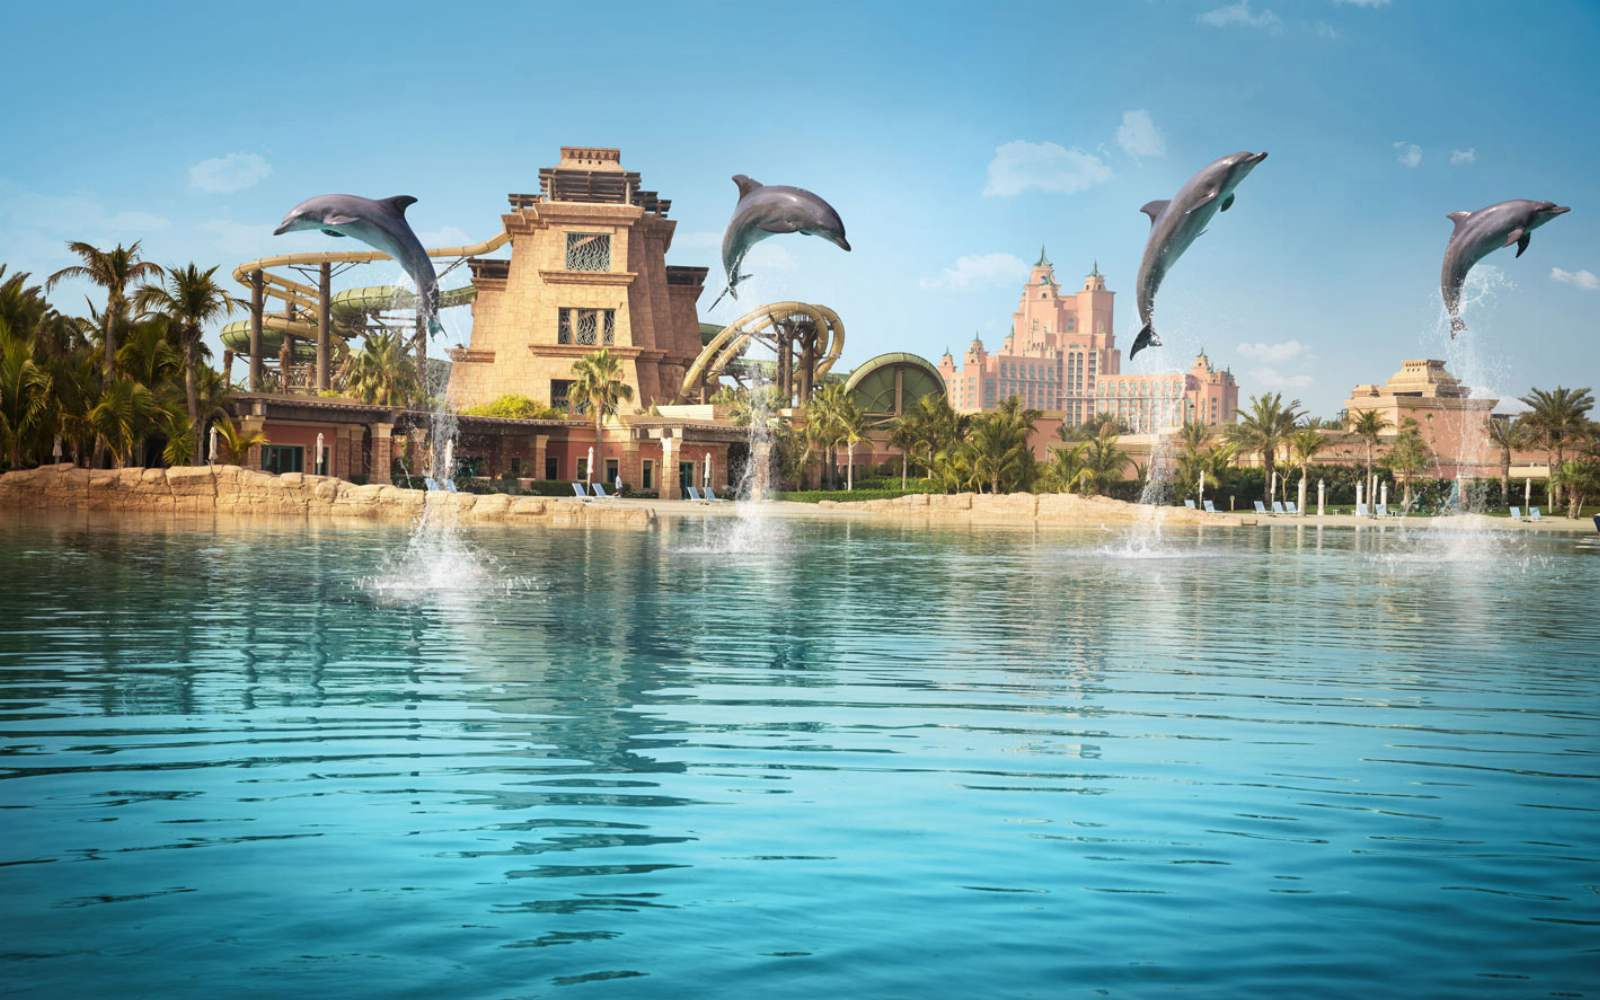 Atlantis, The Palm - Dolphin Jumping